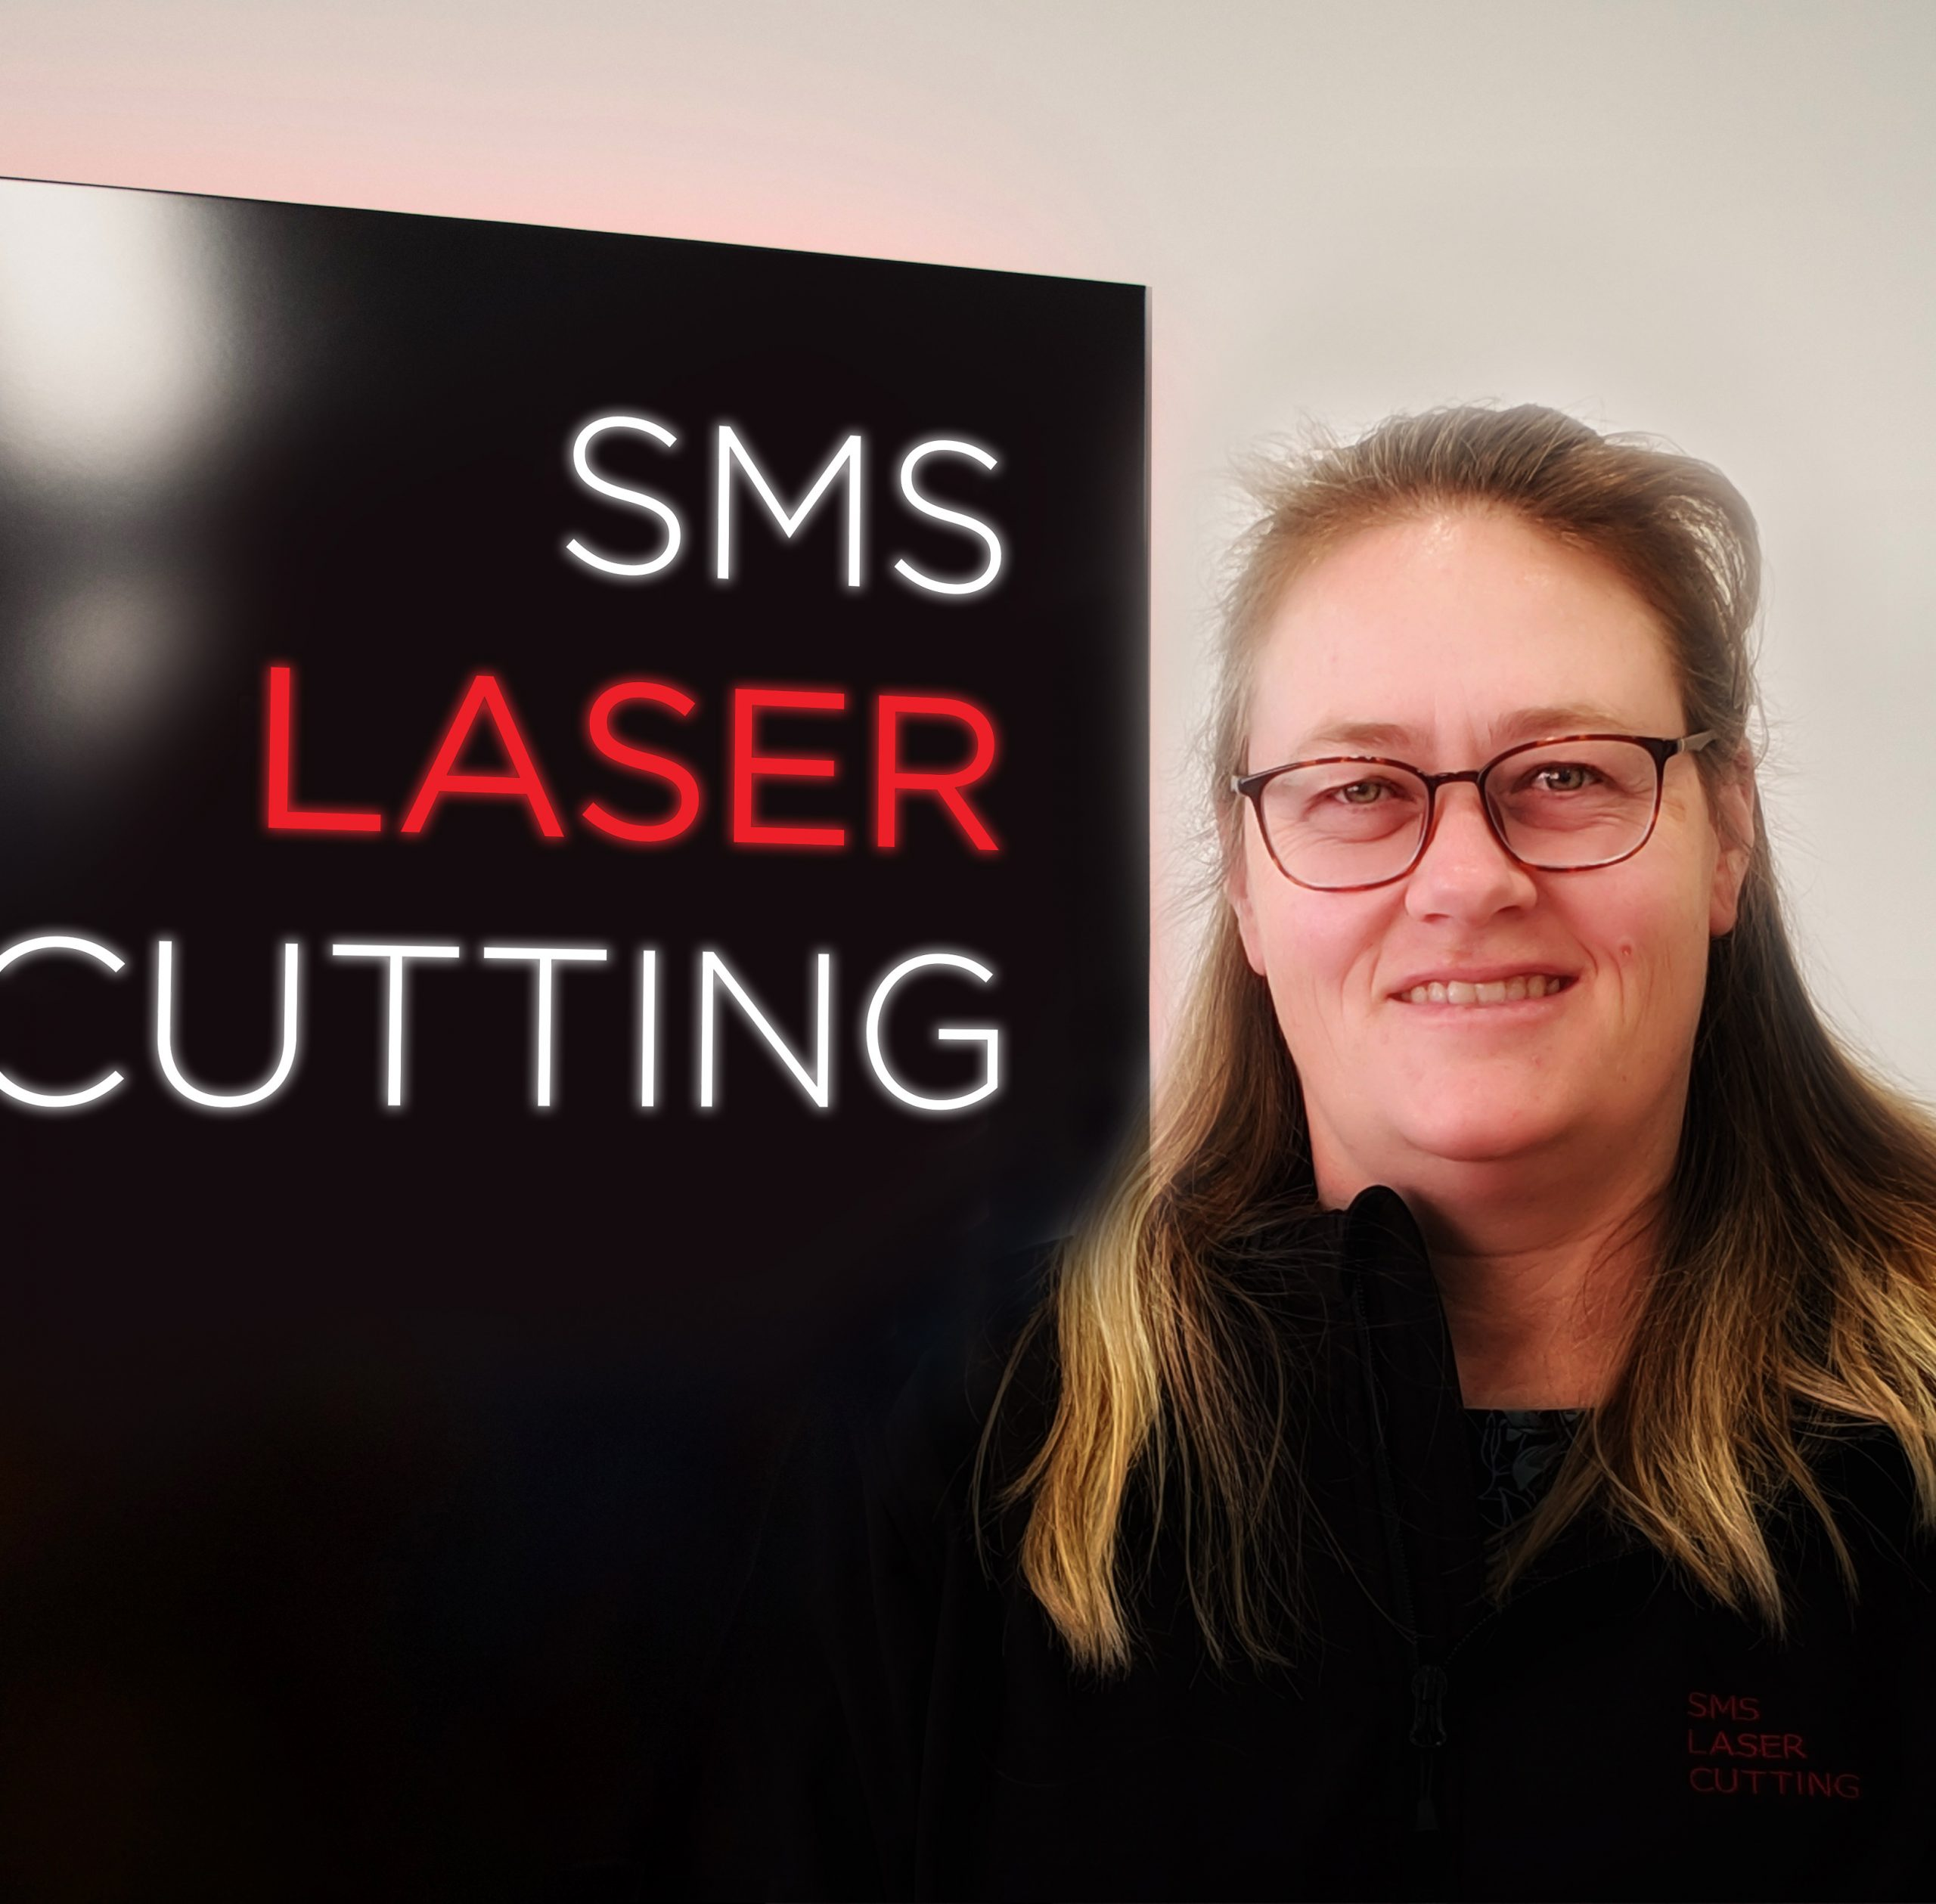 Kaylene Sanders, Human Resources & Marketing Manager, SMS Laser Cutting